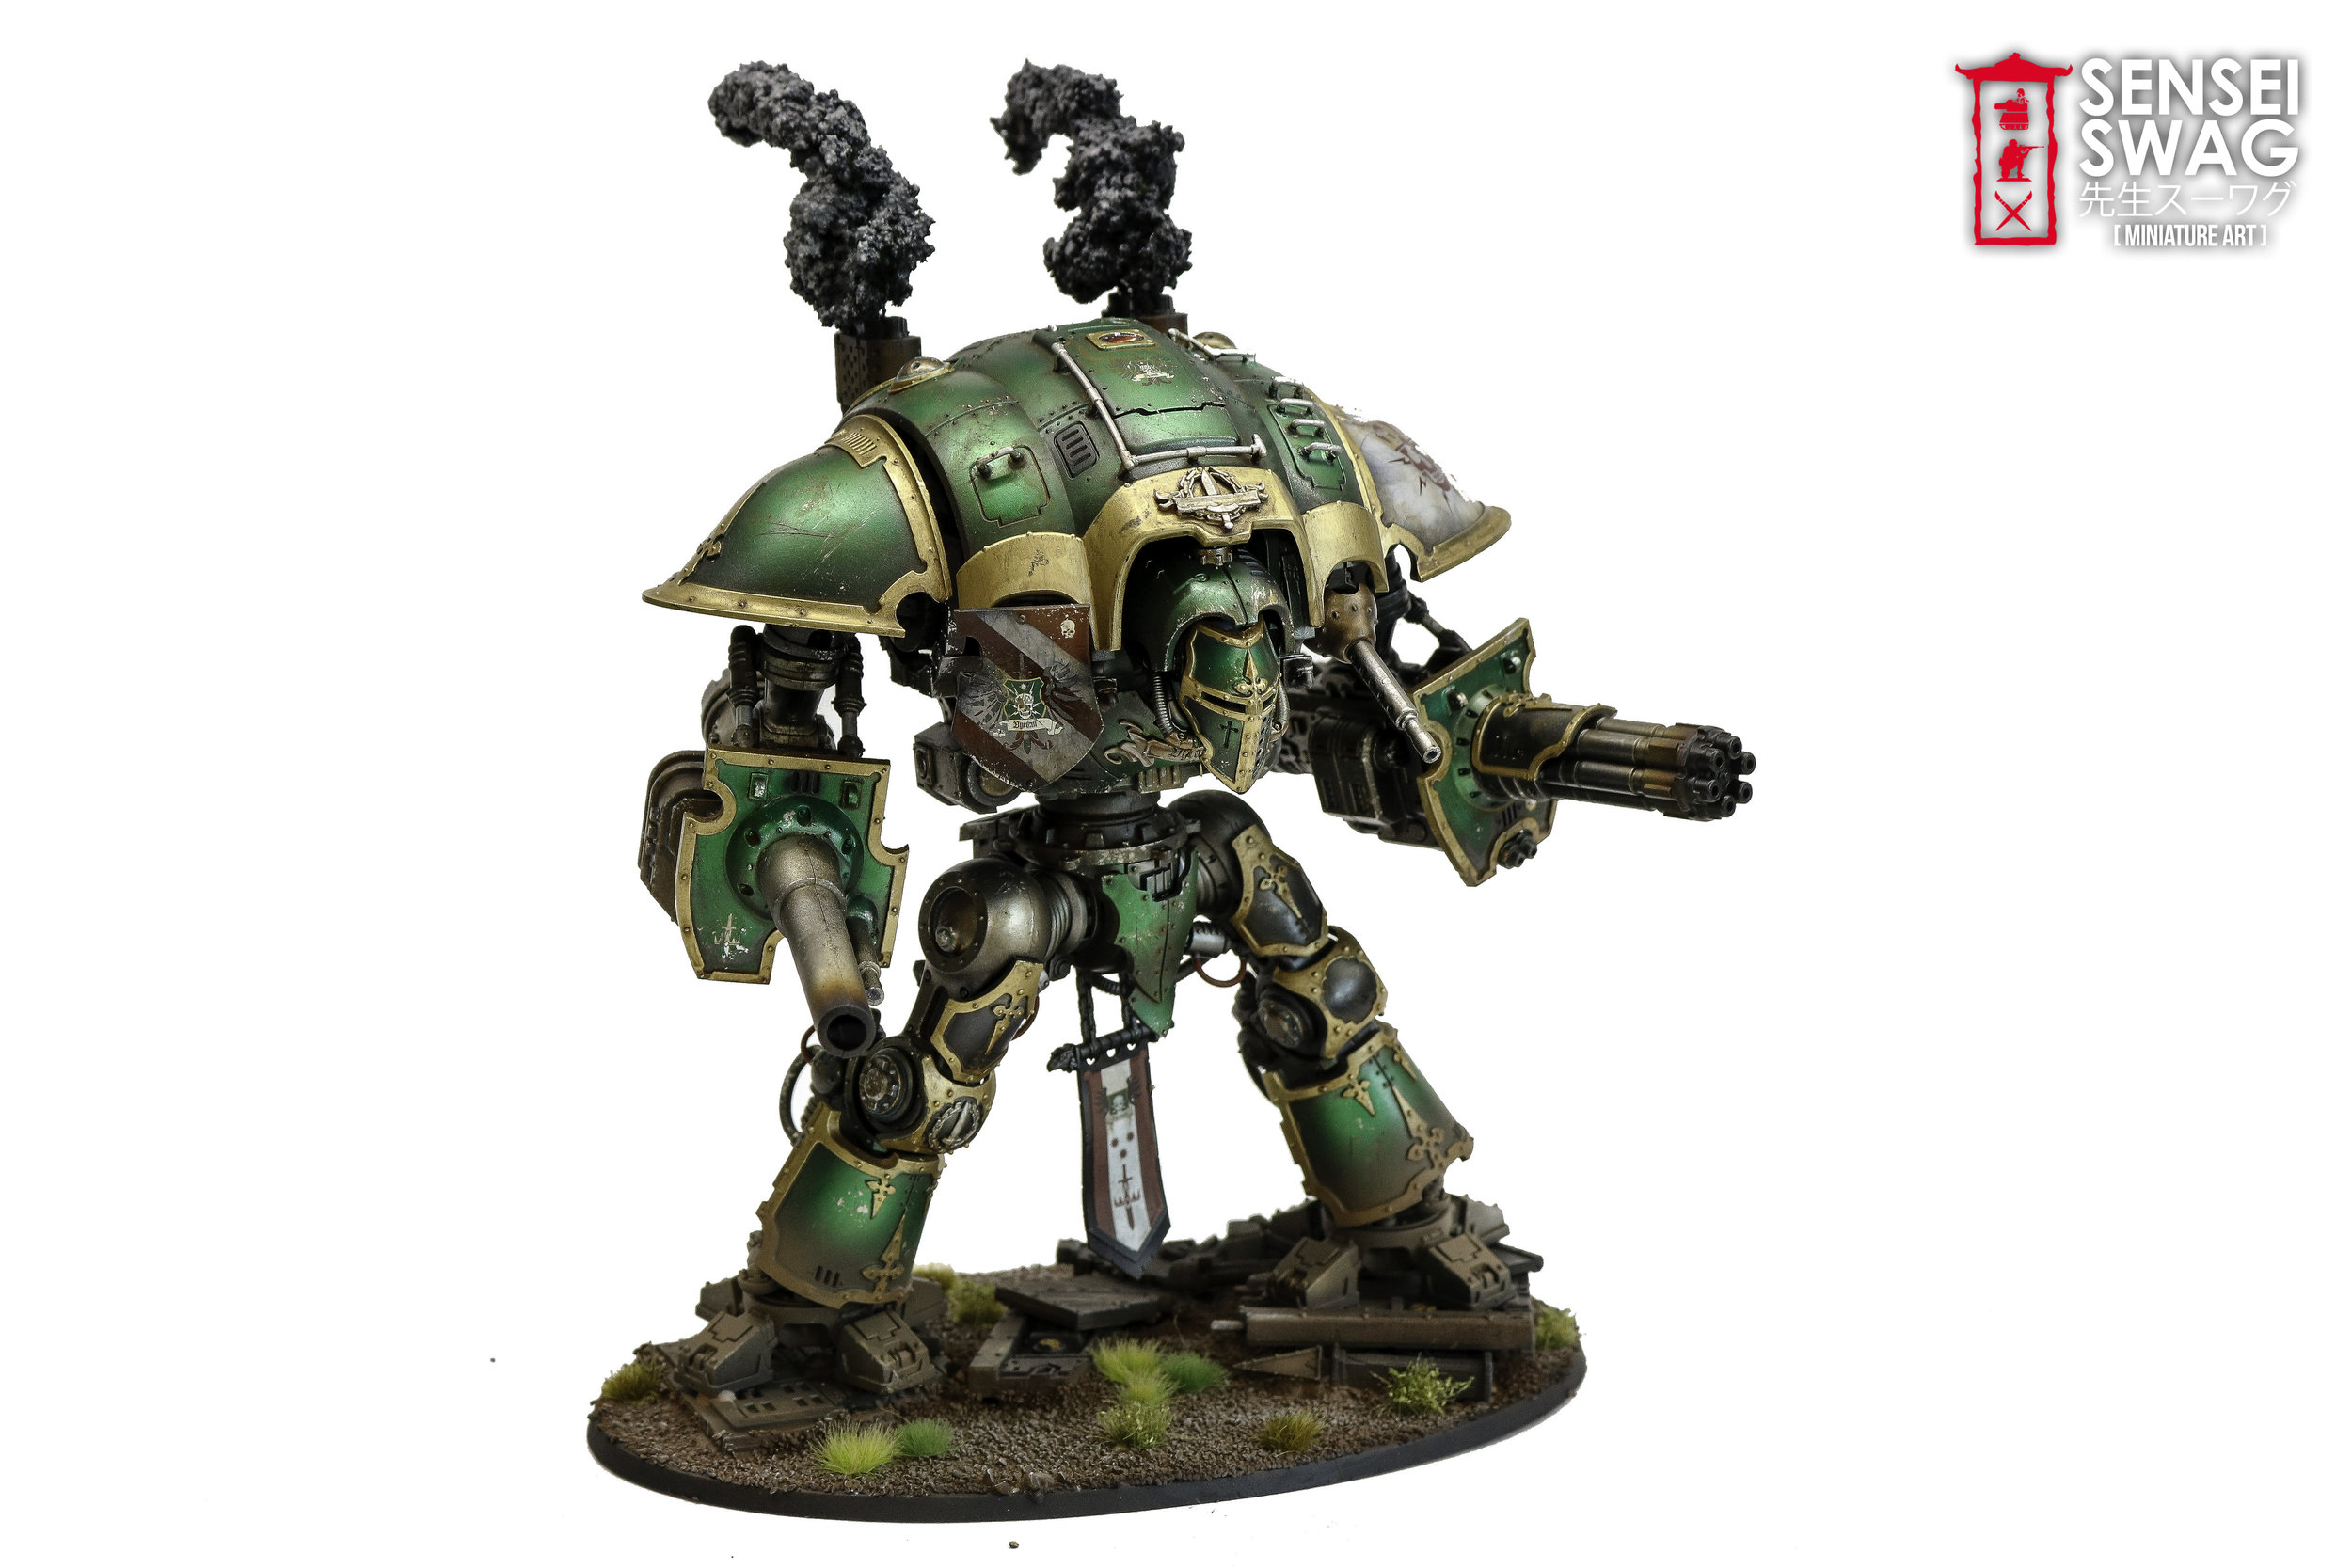 House Vyronii Imperial Knights Crusader Candy Airbrush Watermark-4.jpg